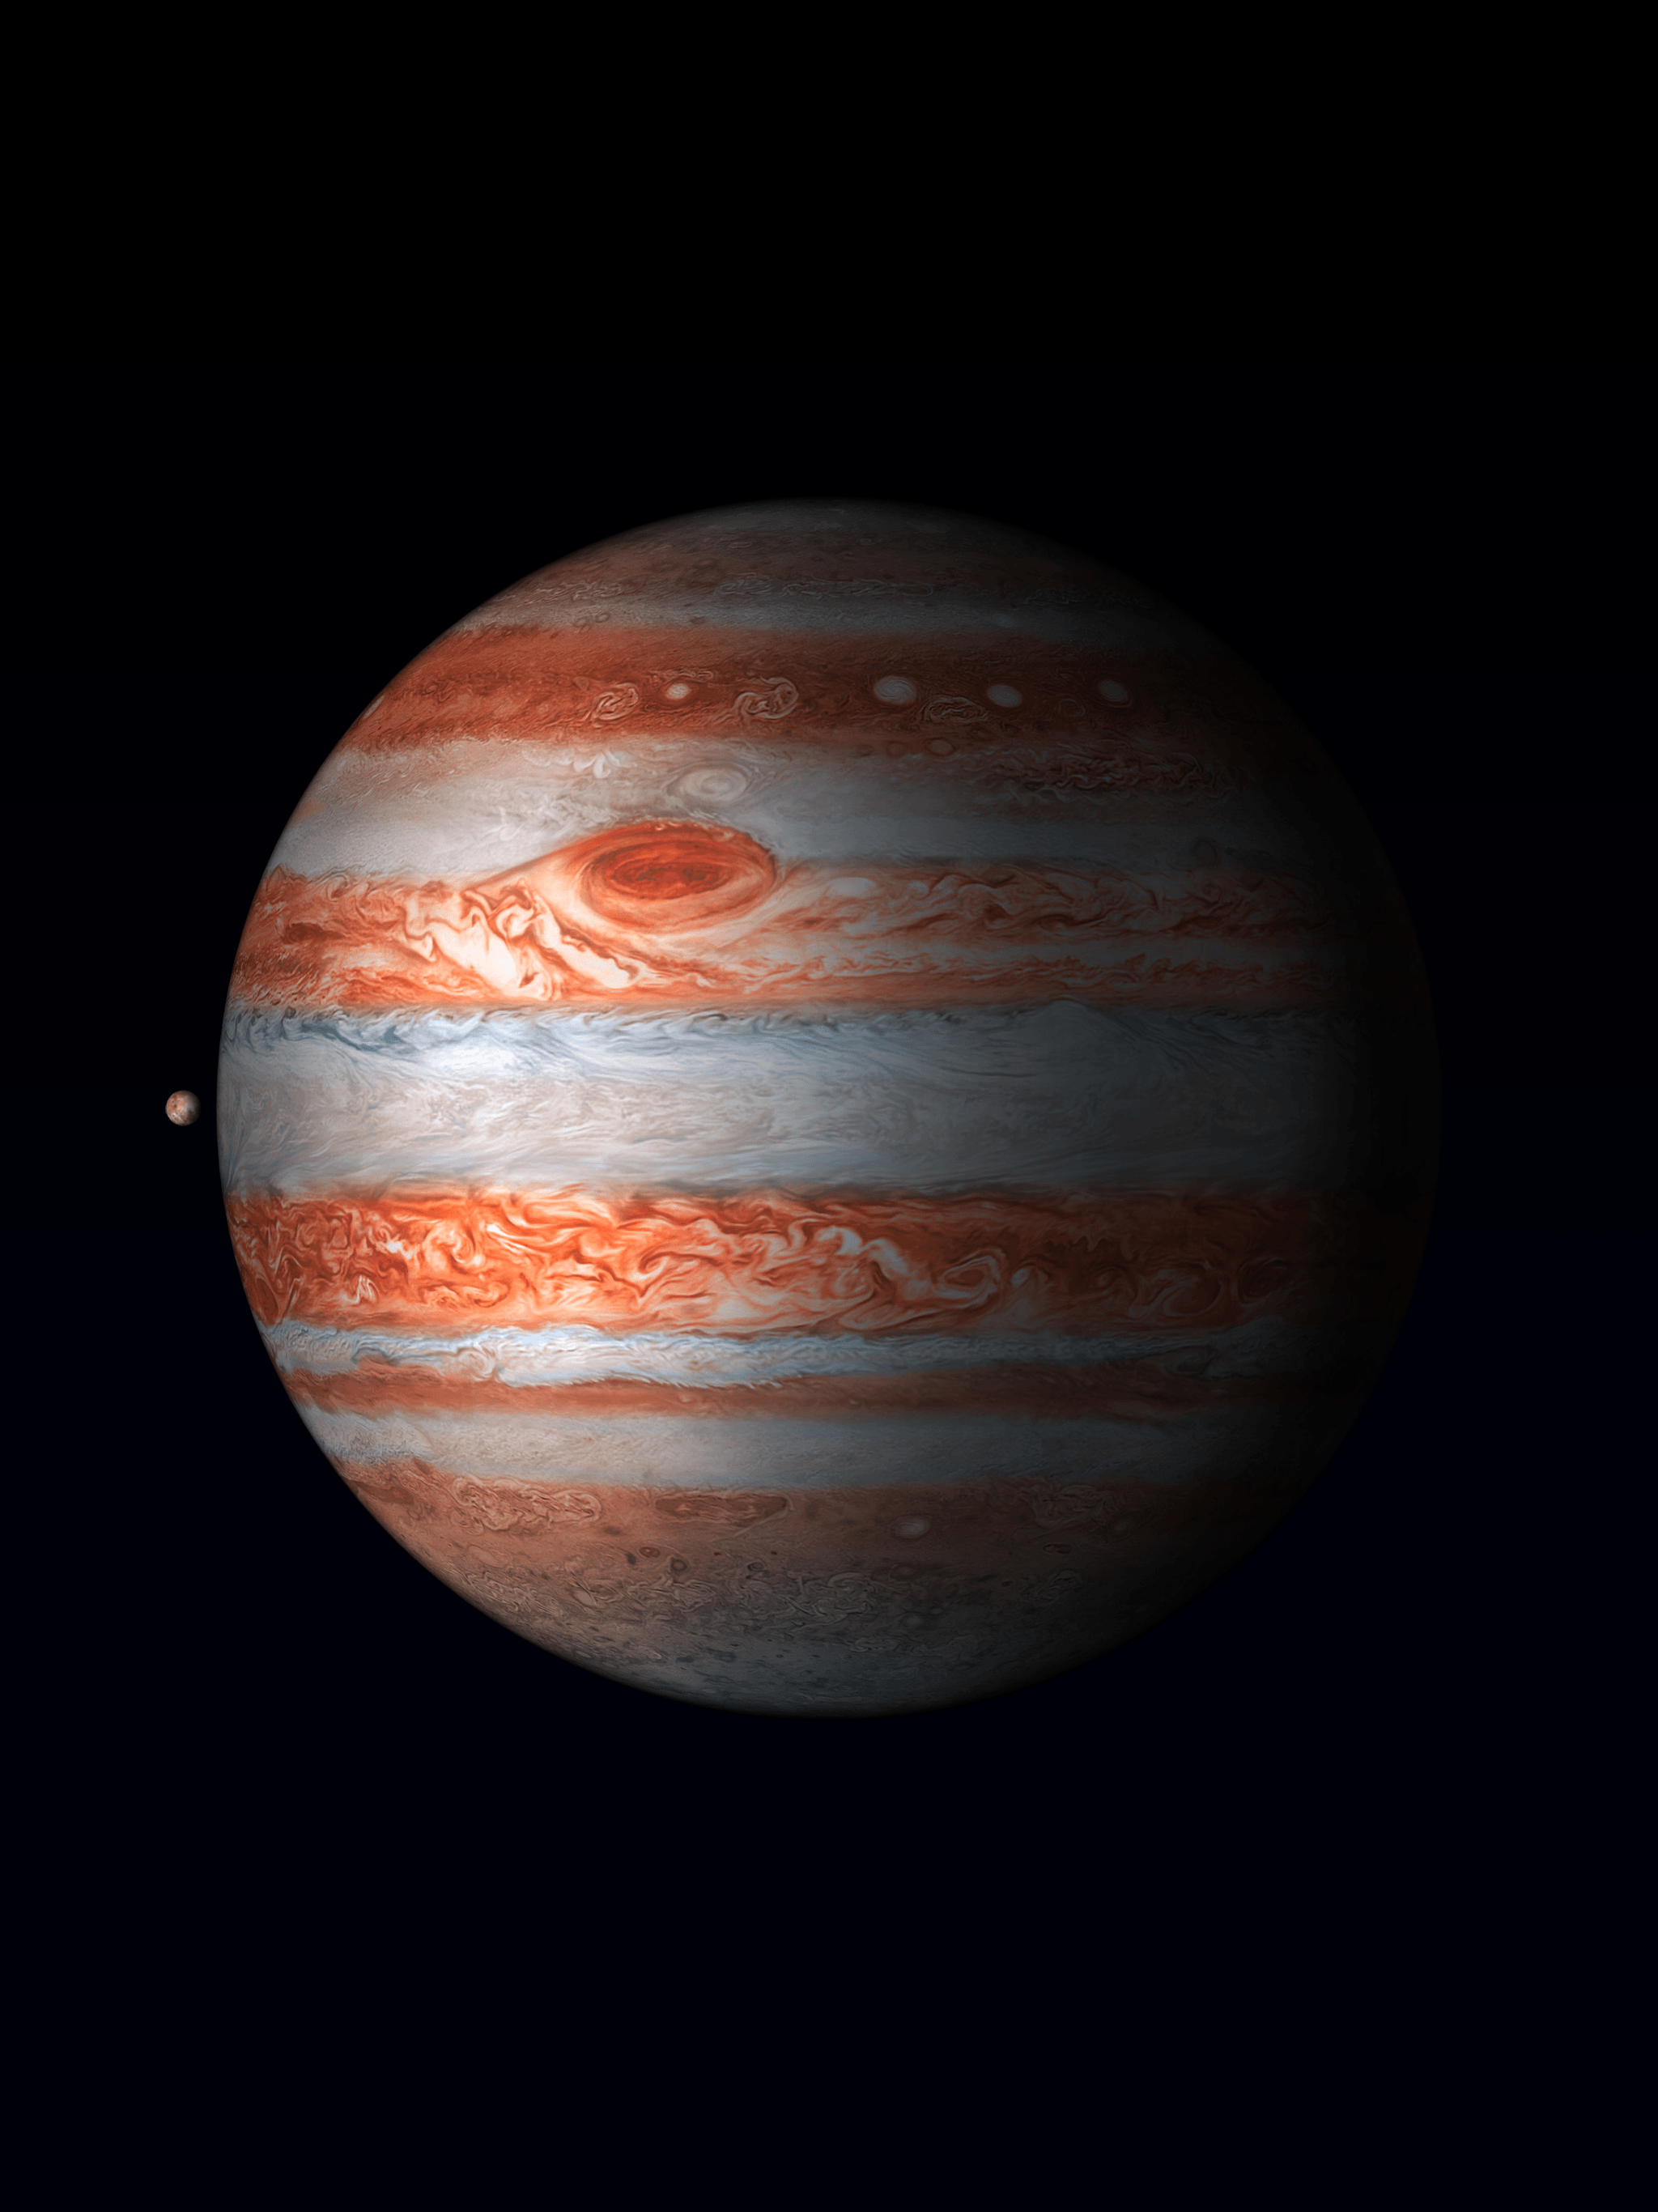 2048x2732 Jupiter Wallpapers Jupiter Backgrounds And Images 32 Fungyung In 2020 Jupiter Wallpaper Iphone Wallpaper Jupiter Iphone Wallpaper